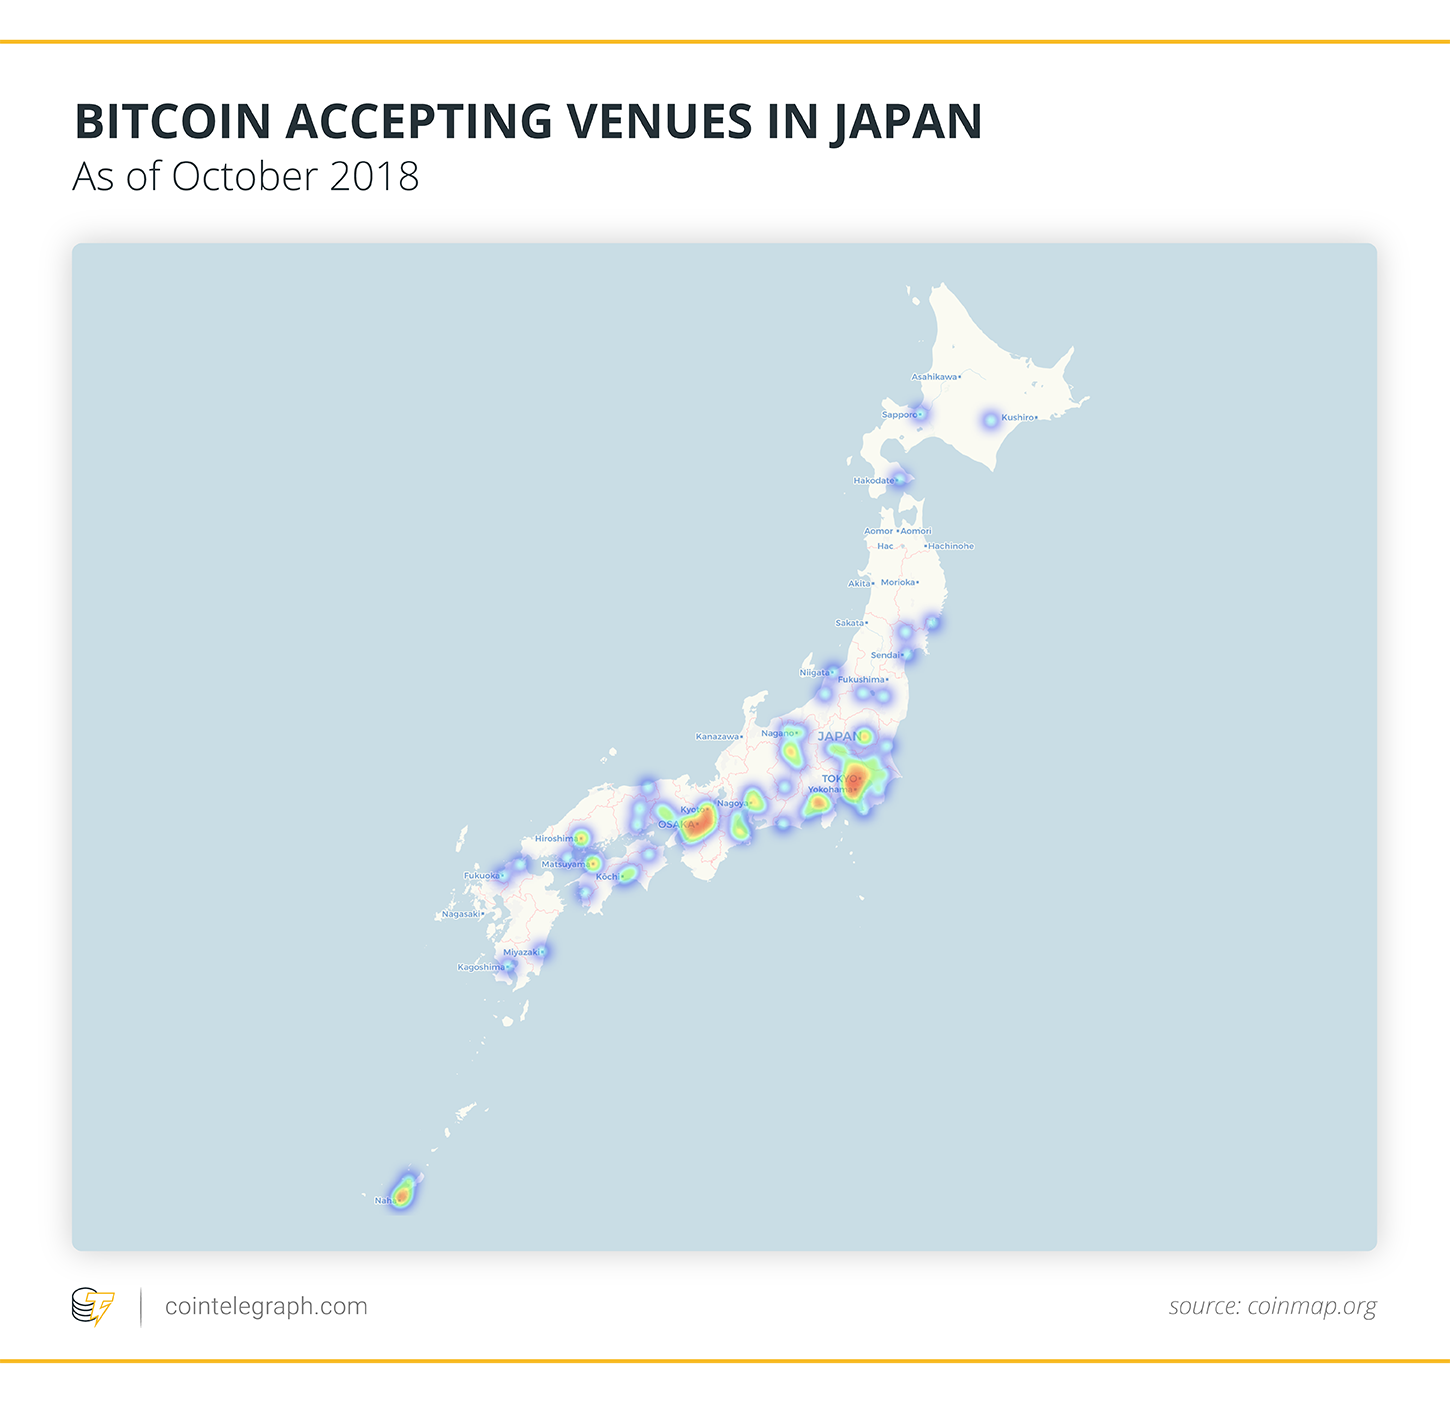 BITCOIN ACCEPTING VENUES IN JAPAN